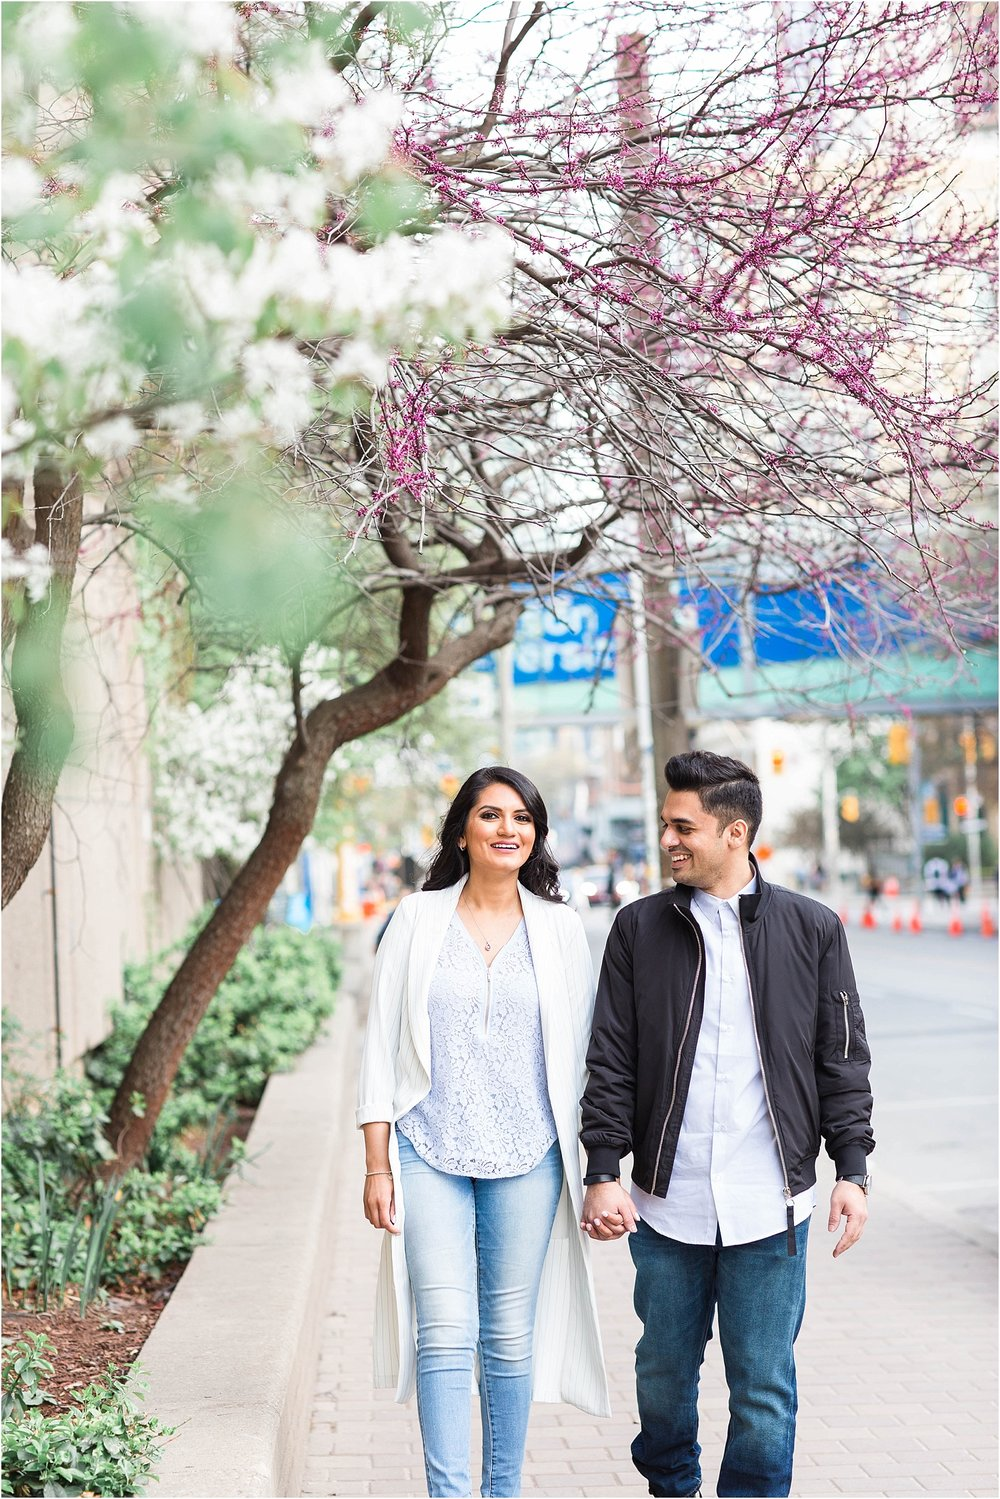 Ryerson-University-Humber-Bay-Bridge-Engagement-Session-Toronto-Mississauga-Brampton-Scarborough-GTA-Pakistani-Indian-Wedding-Engagement-Photographer-Photography_0011.jpg